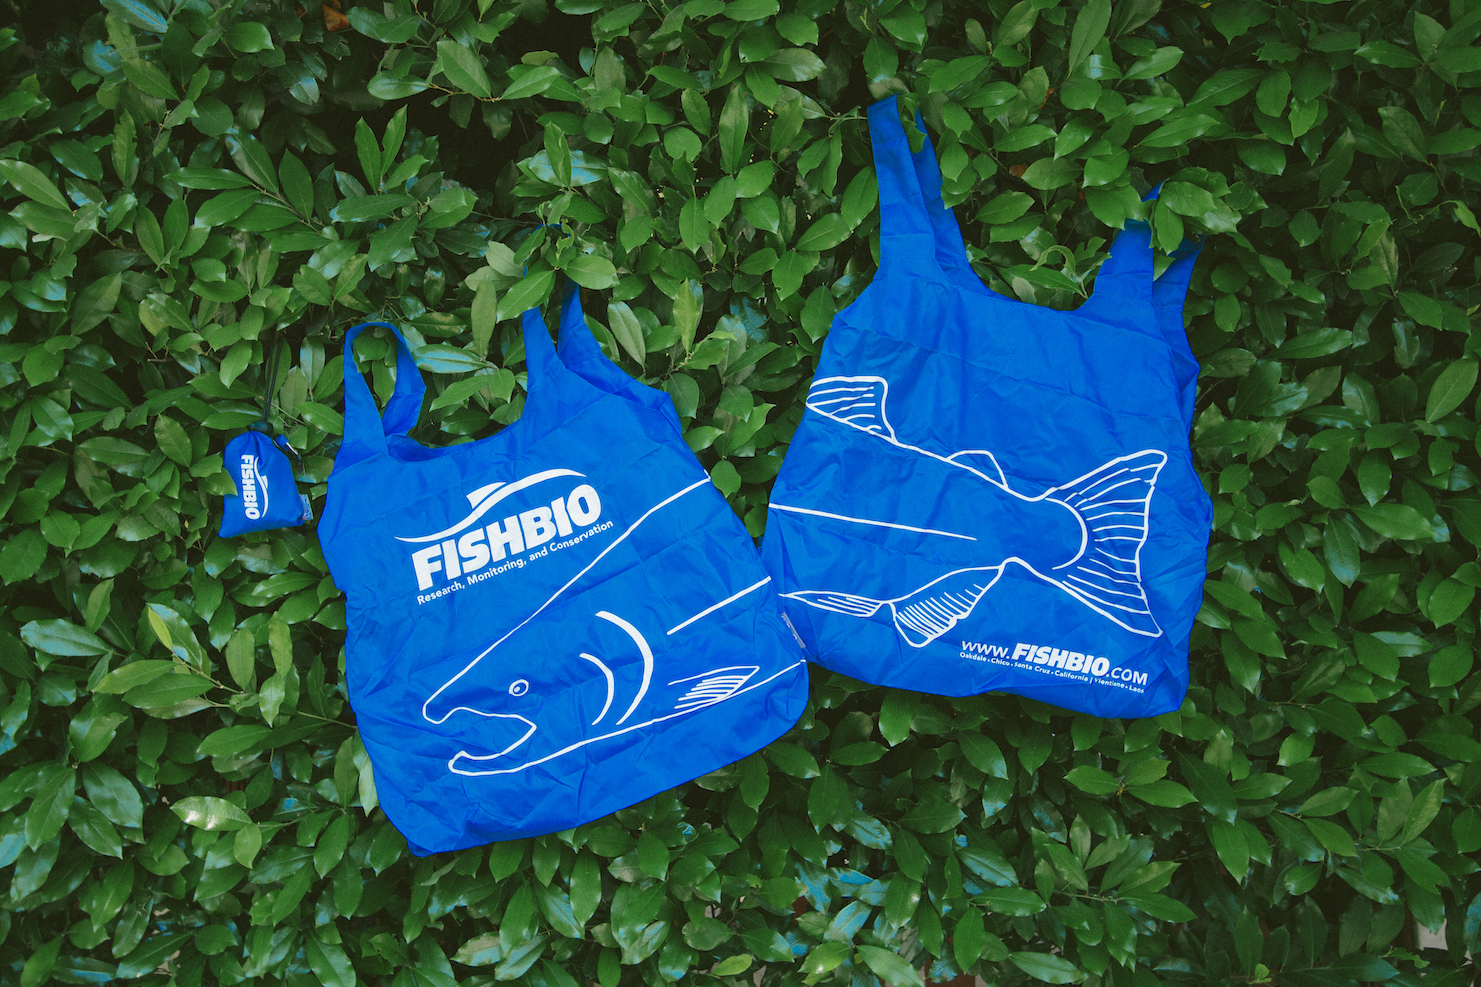 FISHBIO bag salmon design